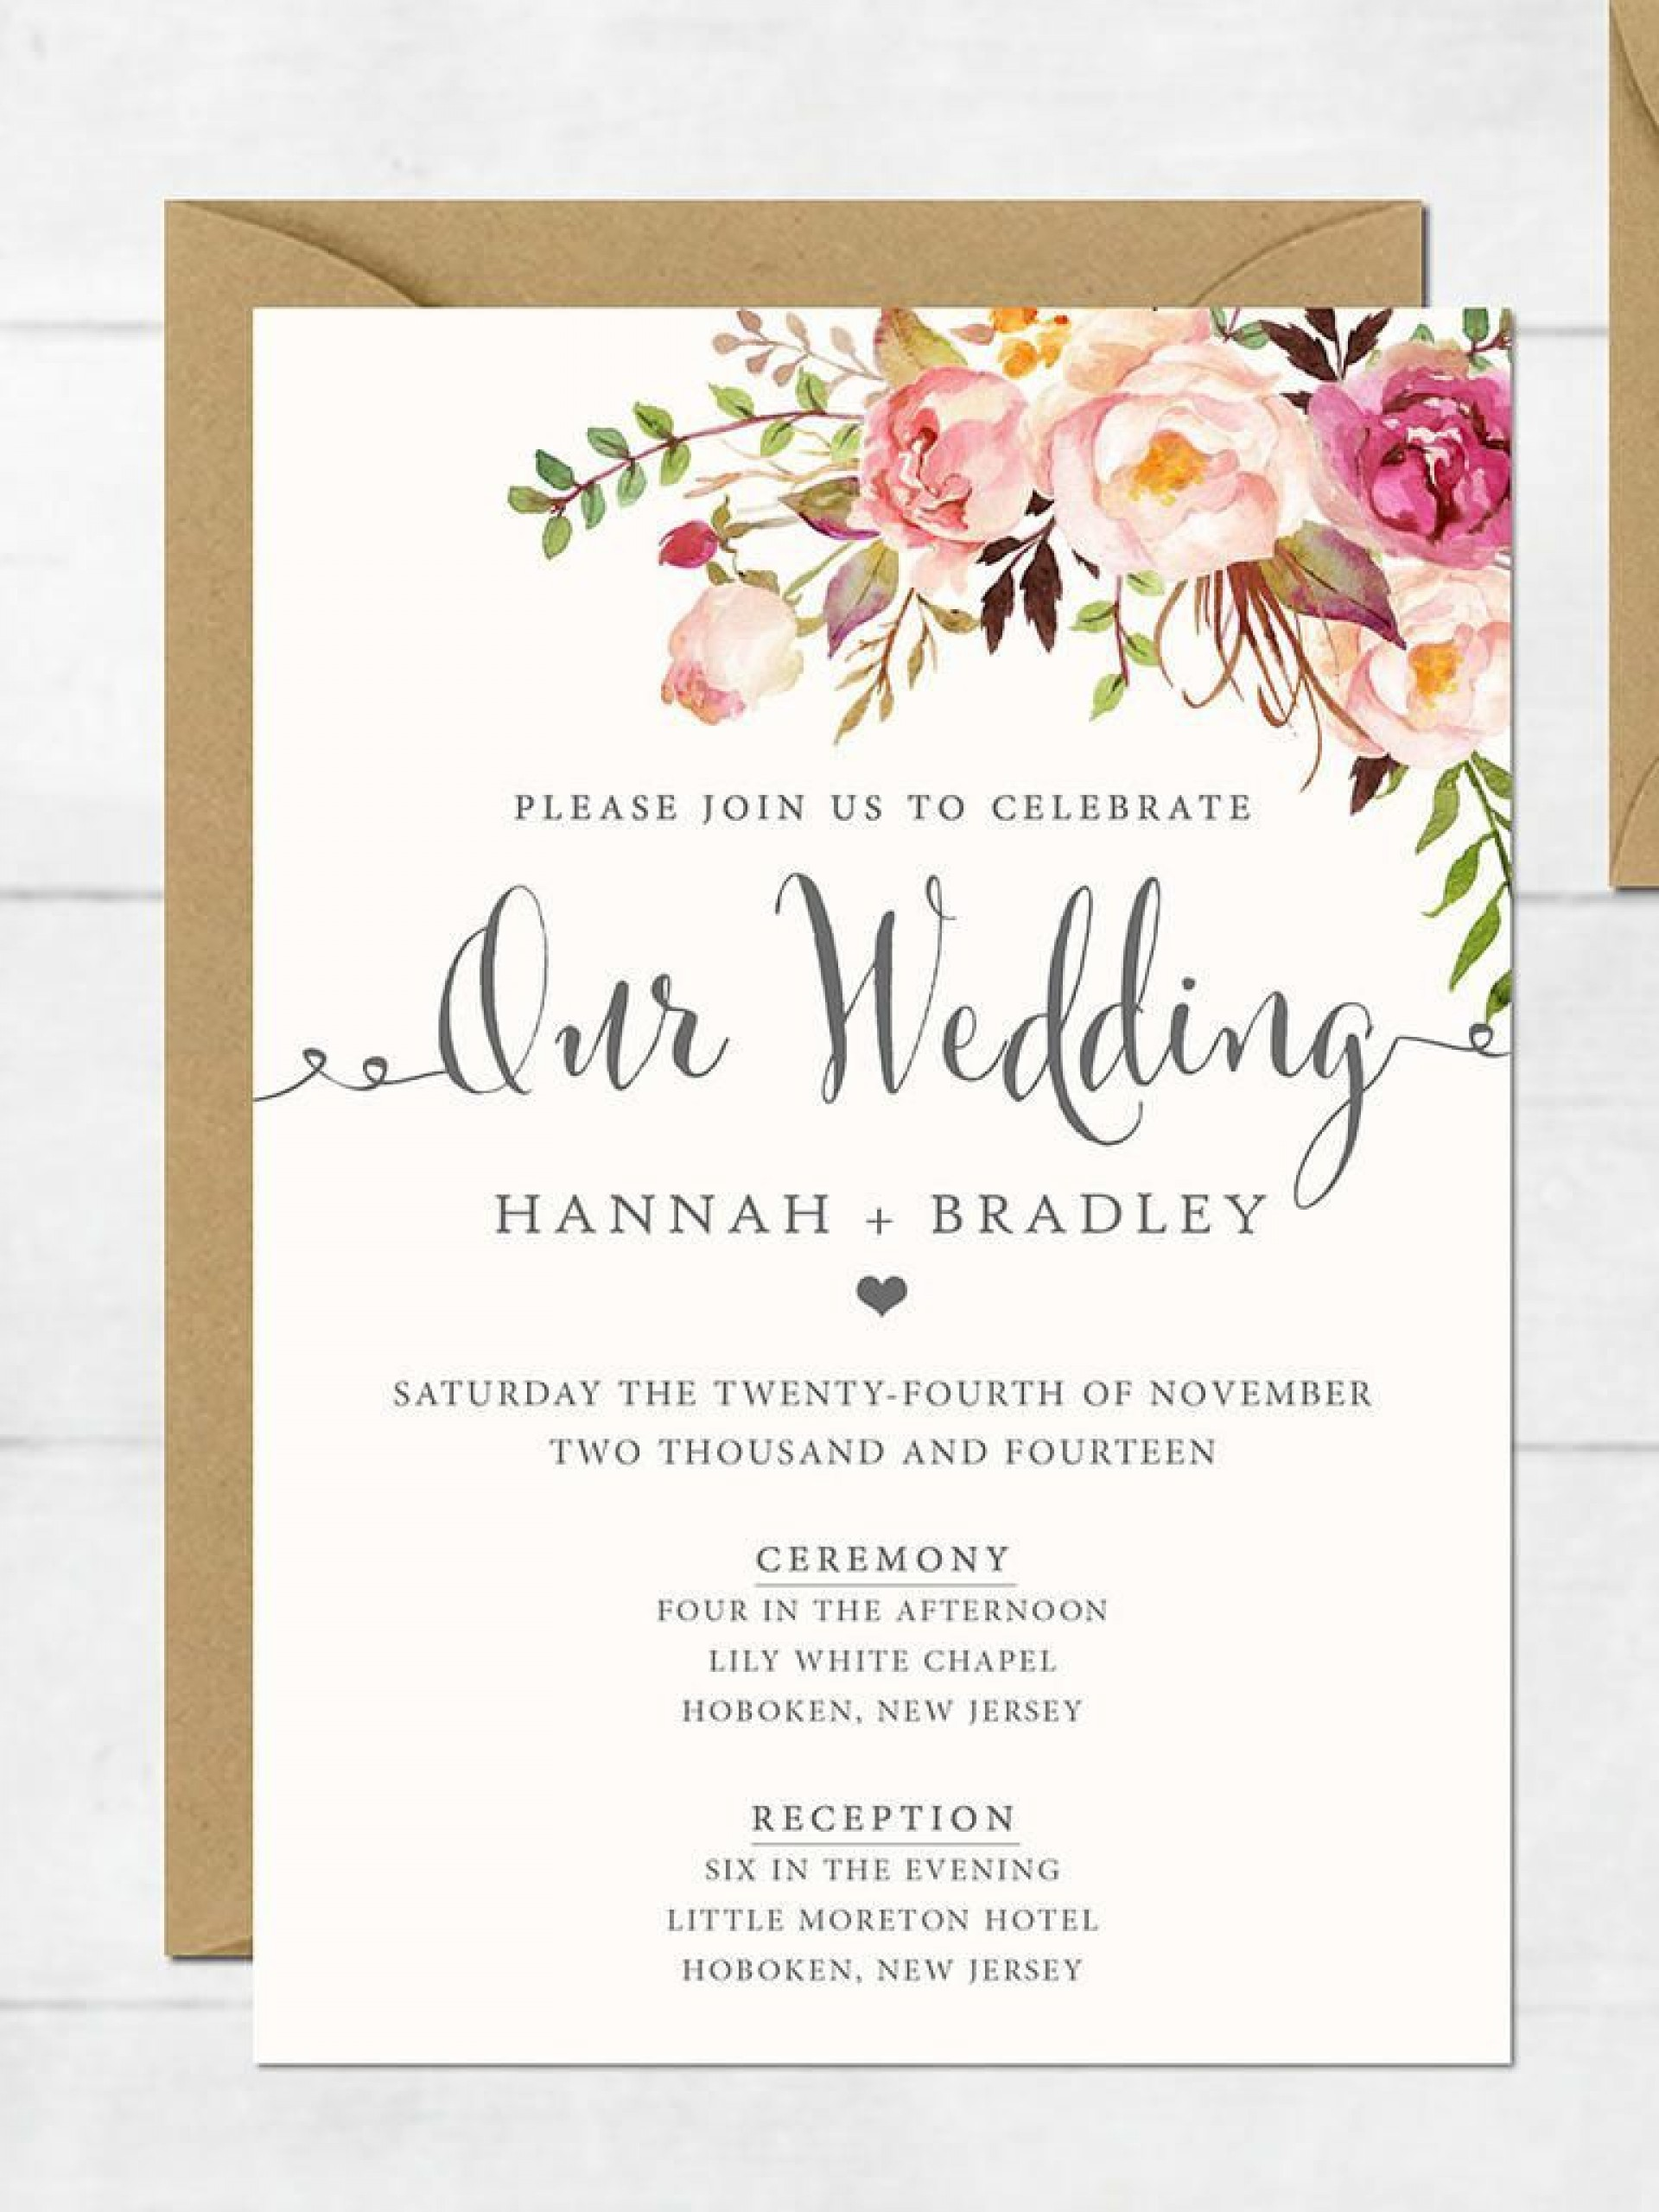 002 Shocking Free Wedding Invitation Template Concept  Printable Download Wording Uk Format1920